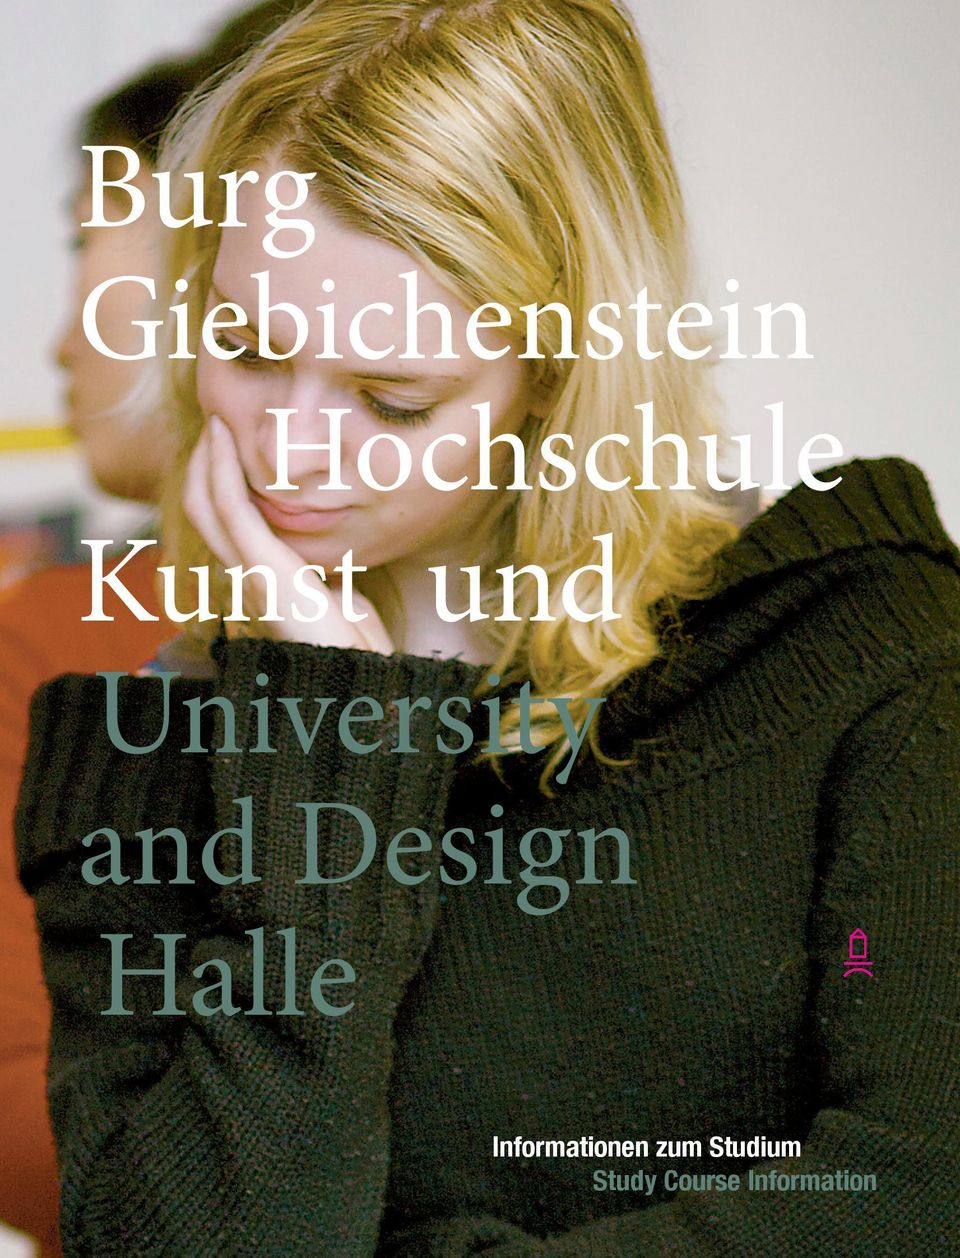 University and Design Halle